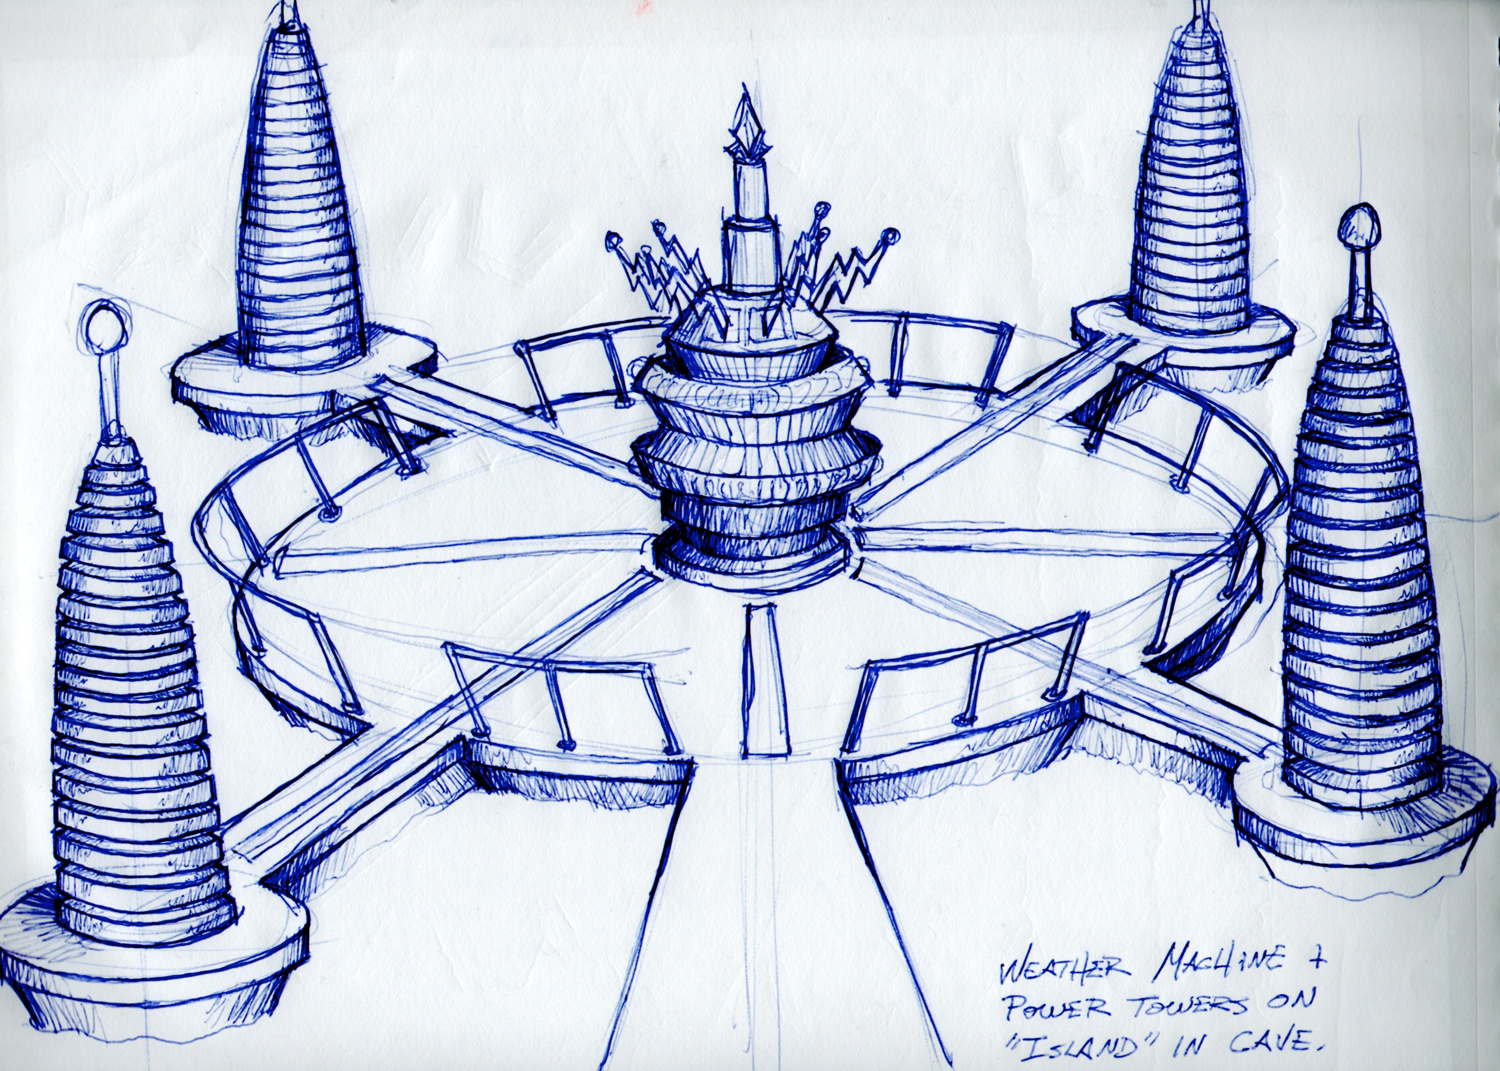 My initial sketch of the dastardly weather control machine for Teen Beach Movie.